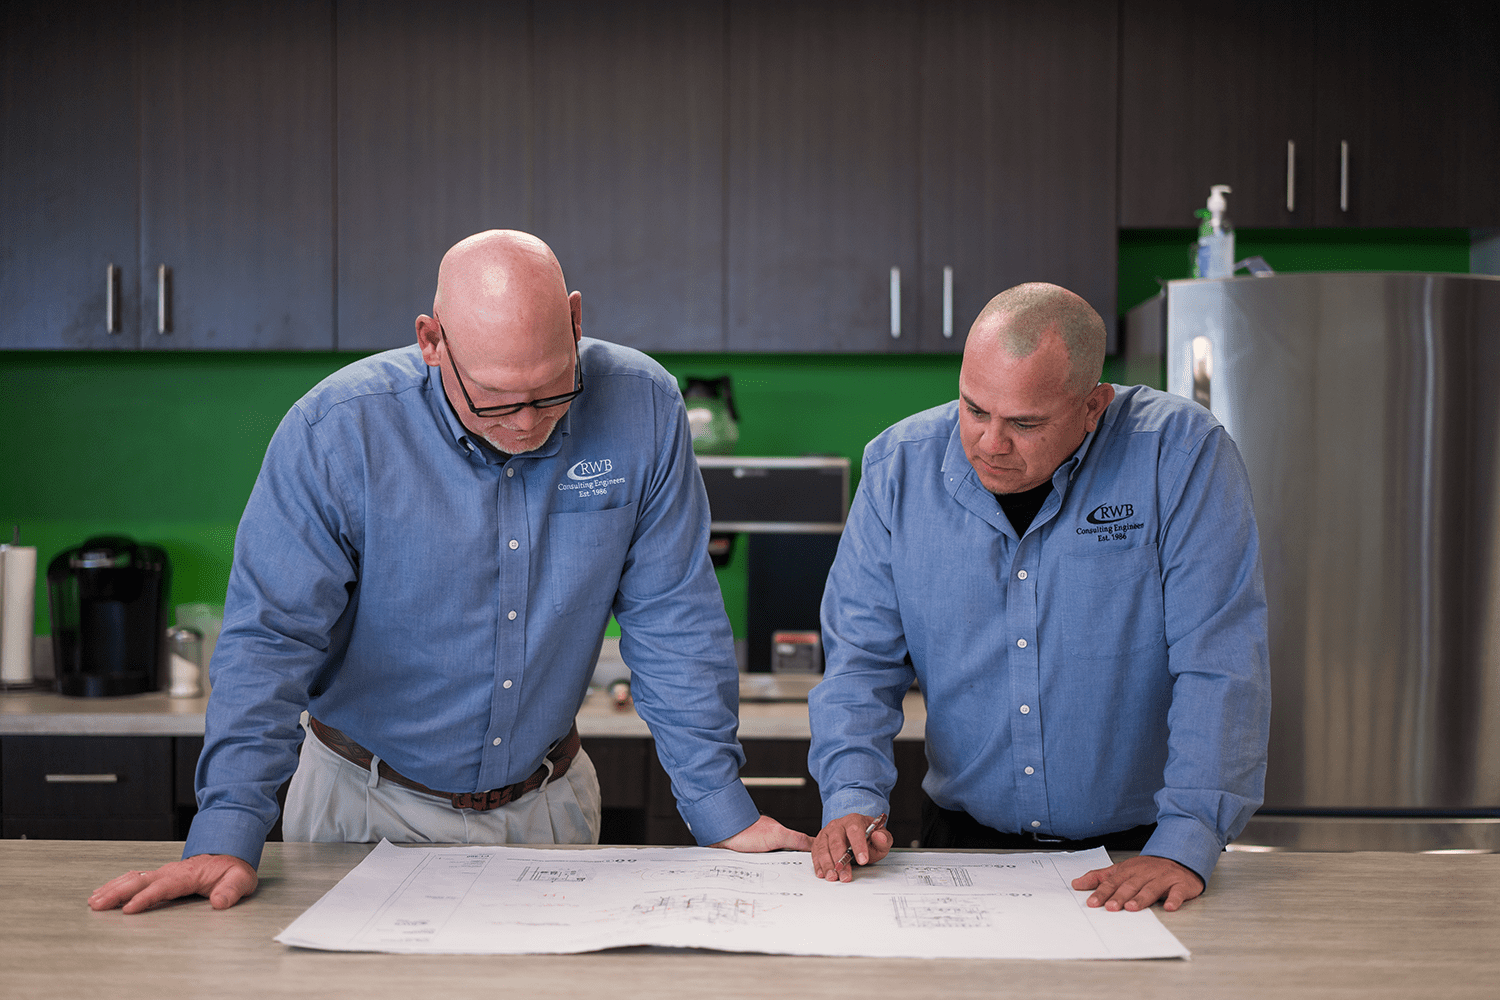 Employees reviewing drawings together